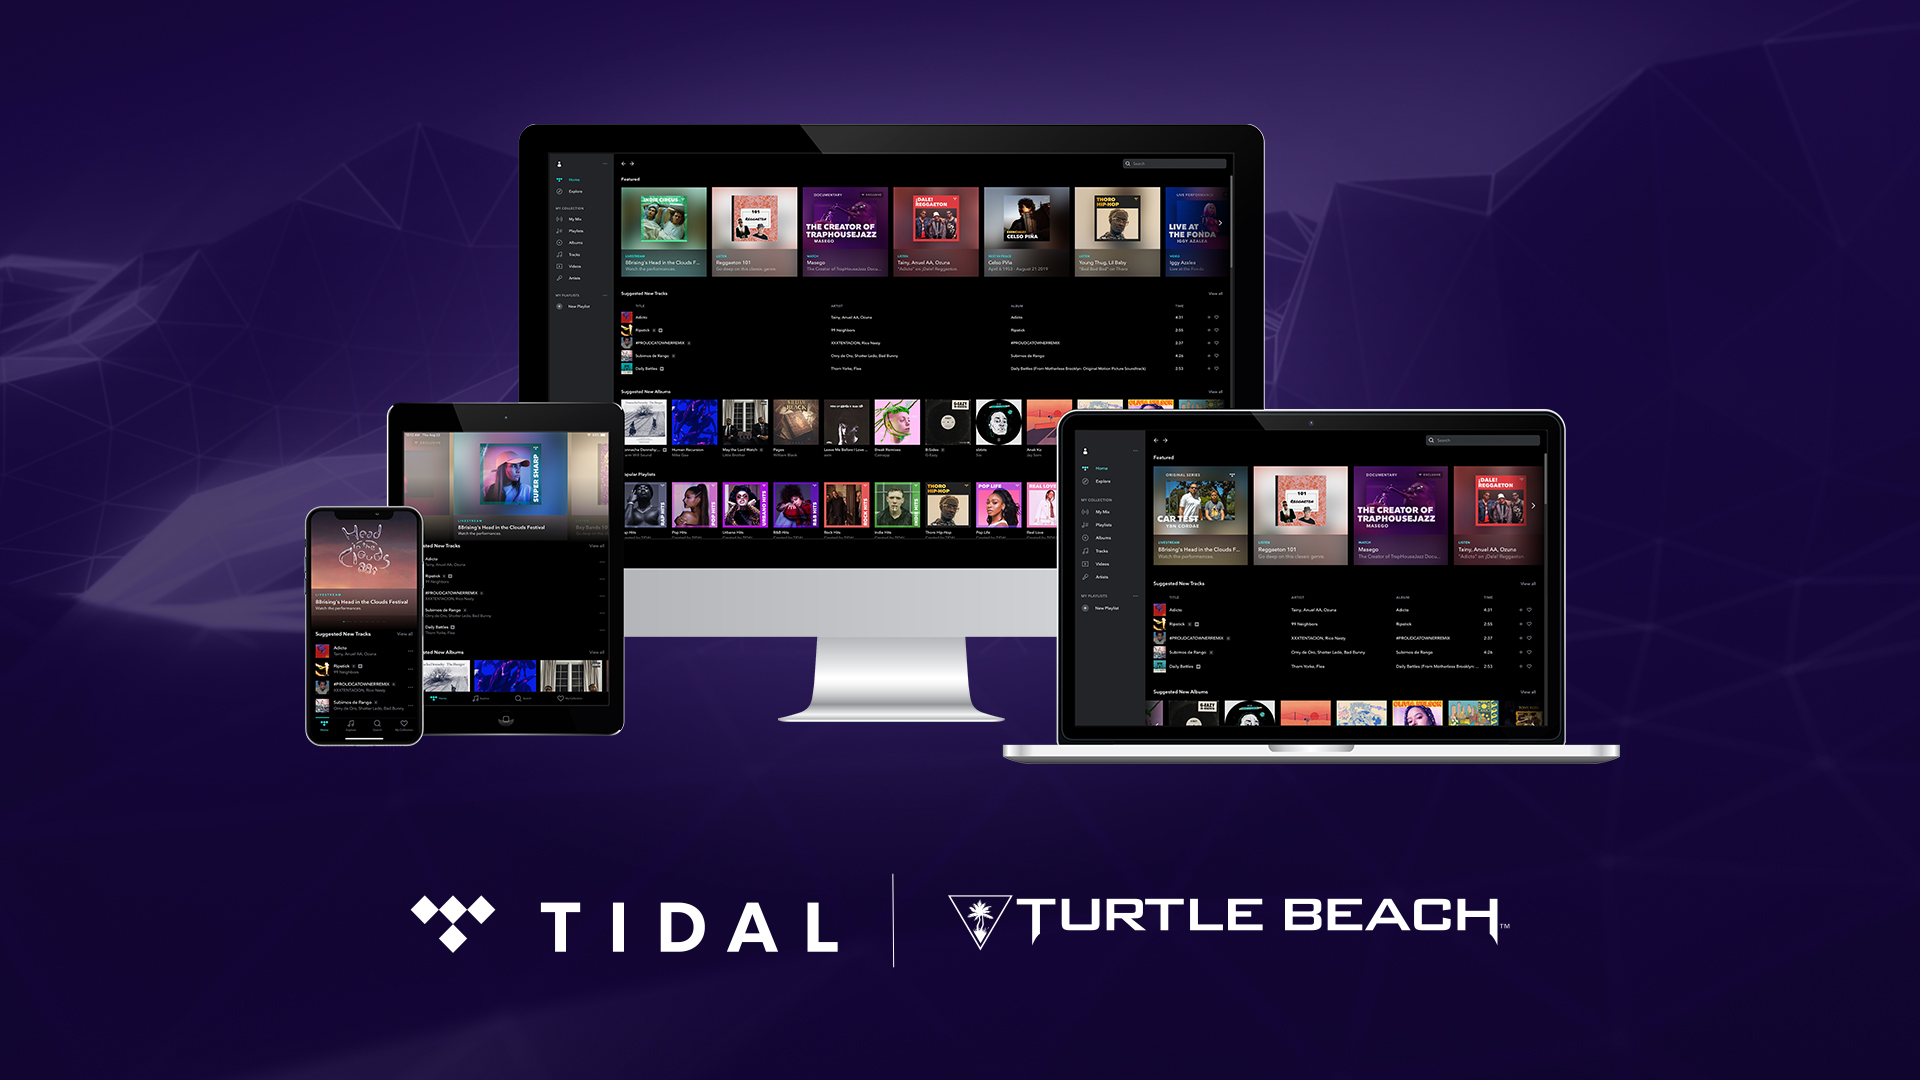 Turtle Beach Announces New Partnership With Tidal